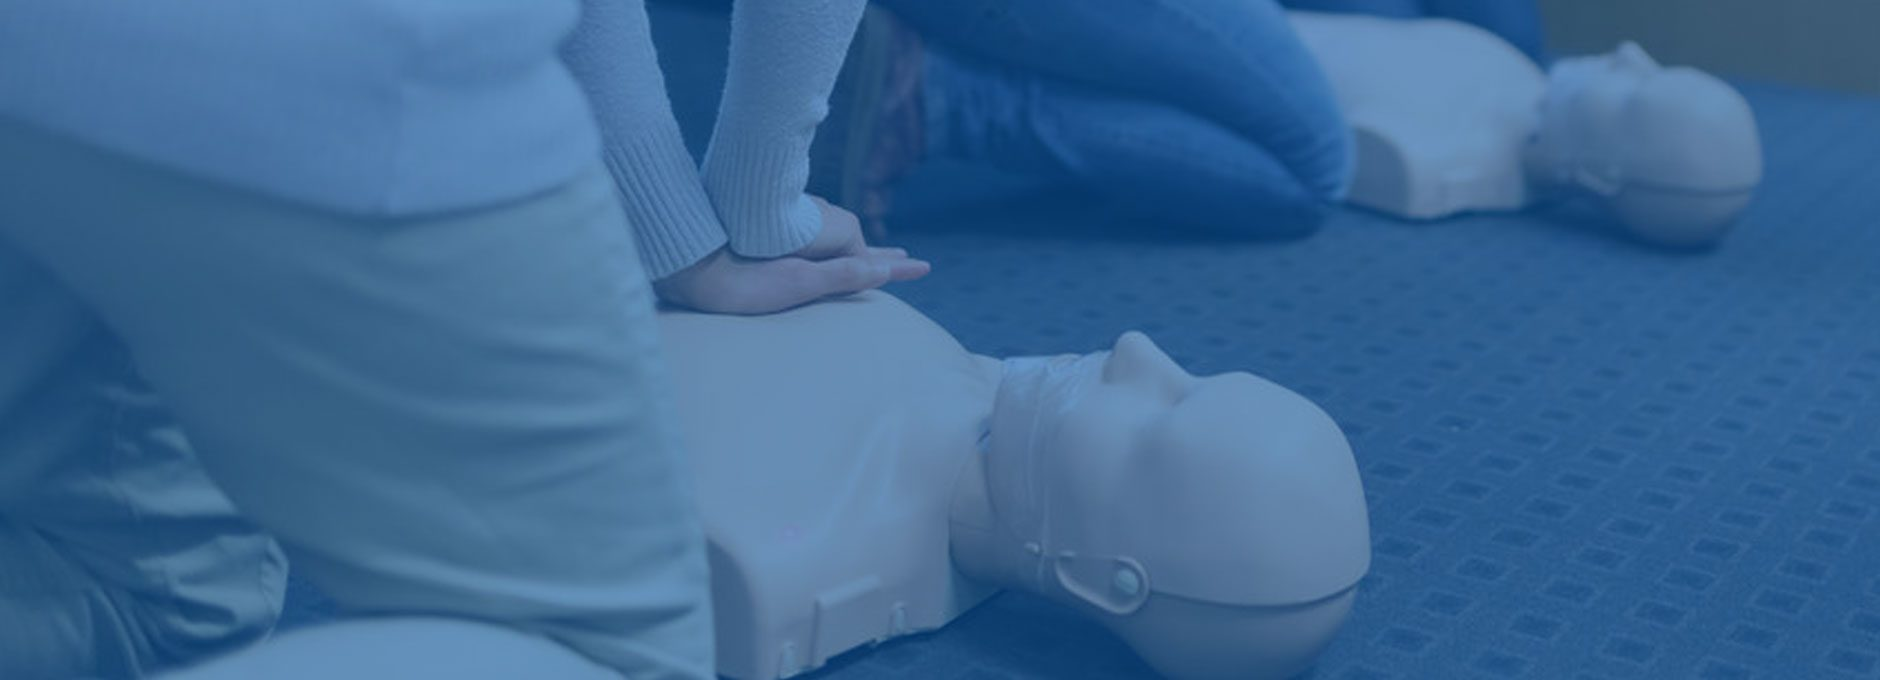 First aid tips for runners